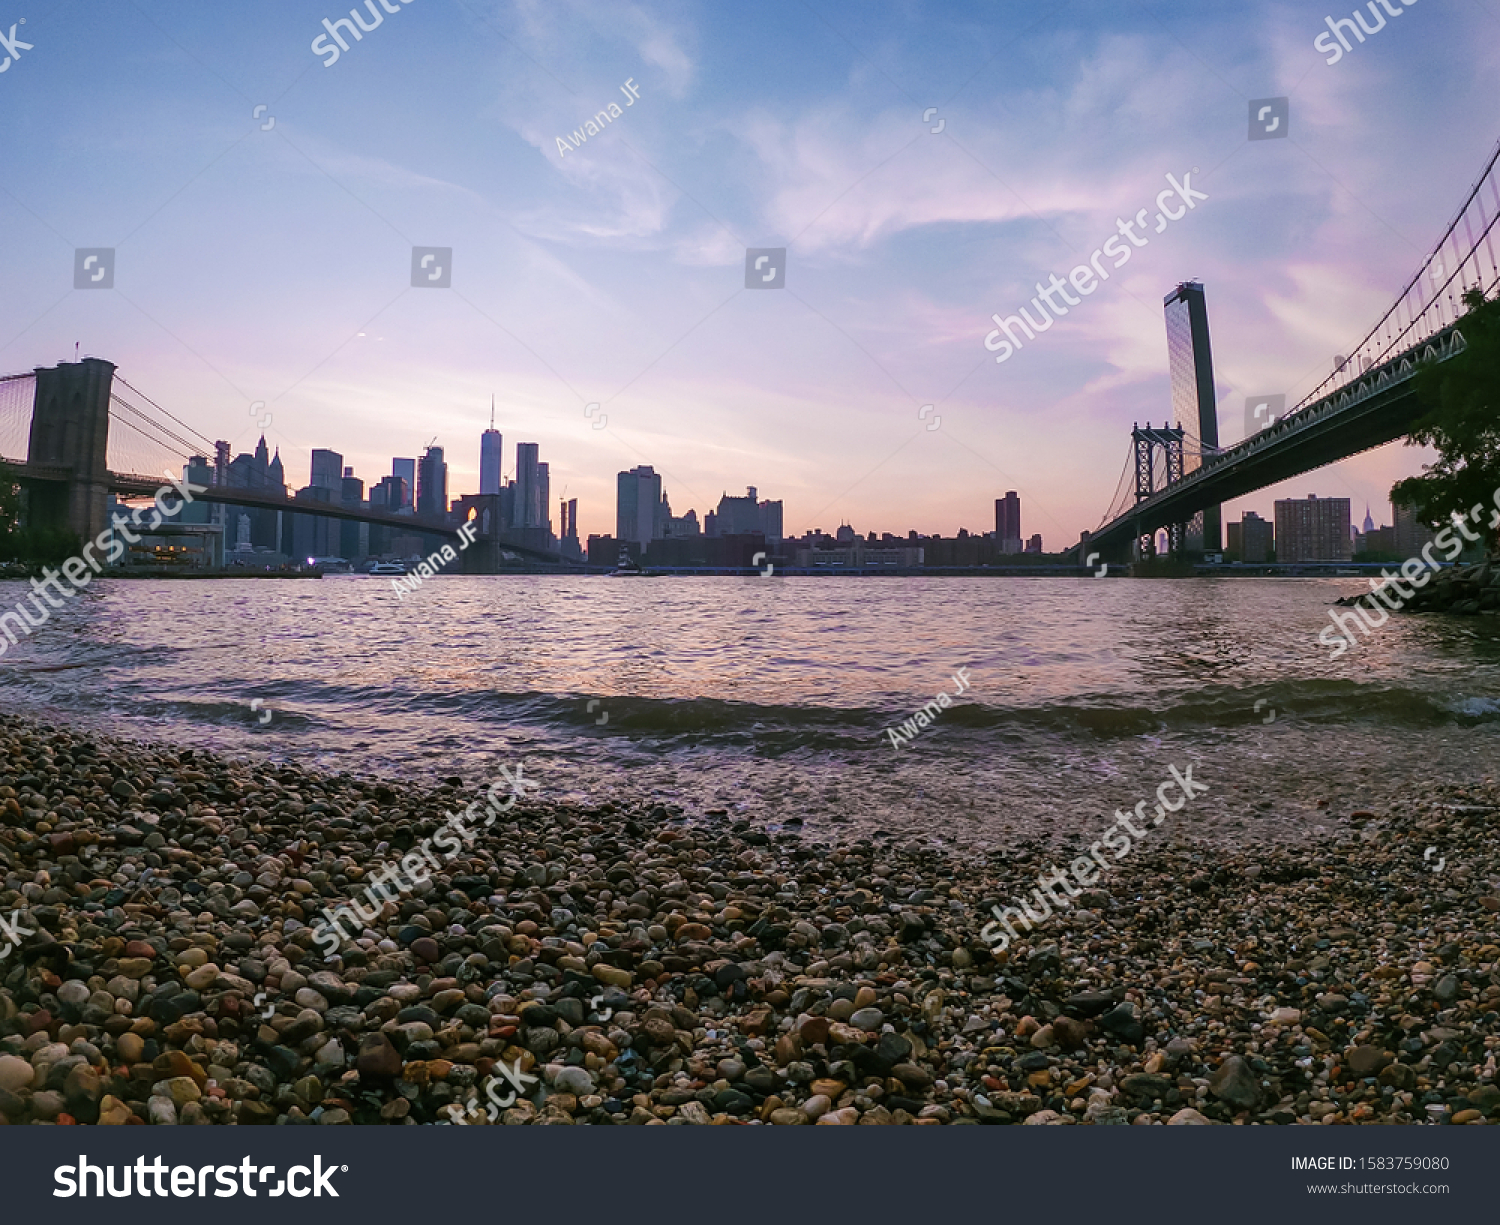 stock-photo-evening-view-of-new-york-s-s